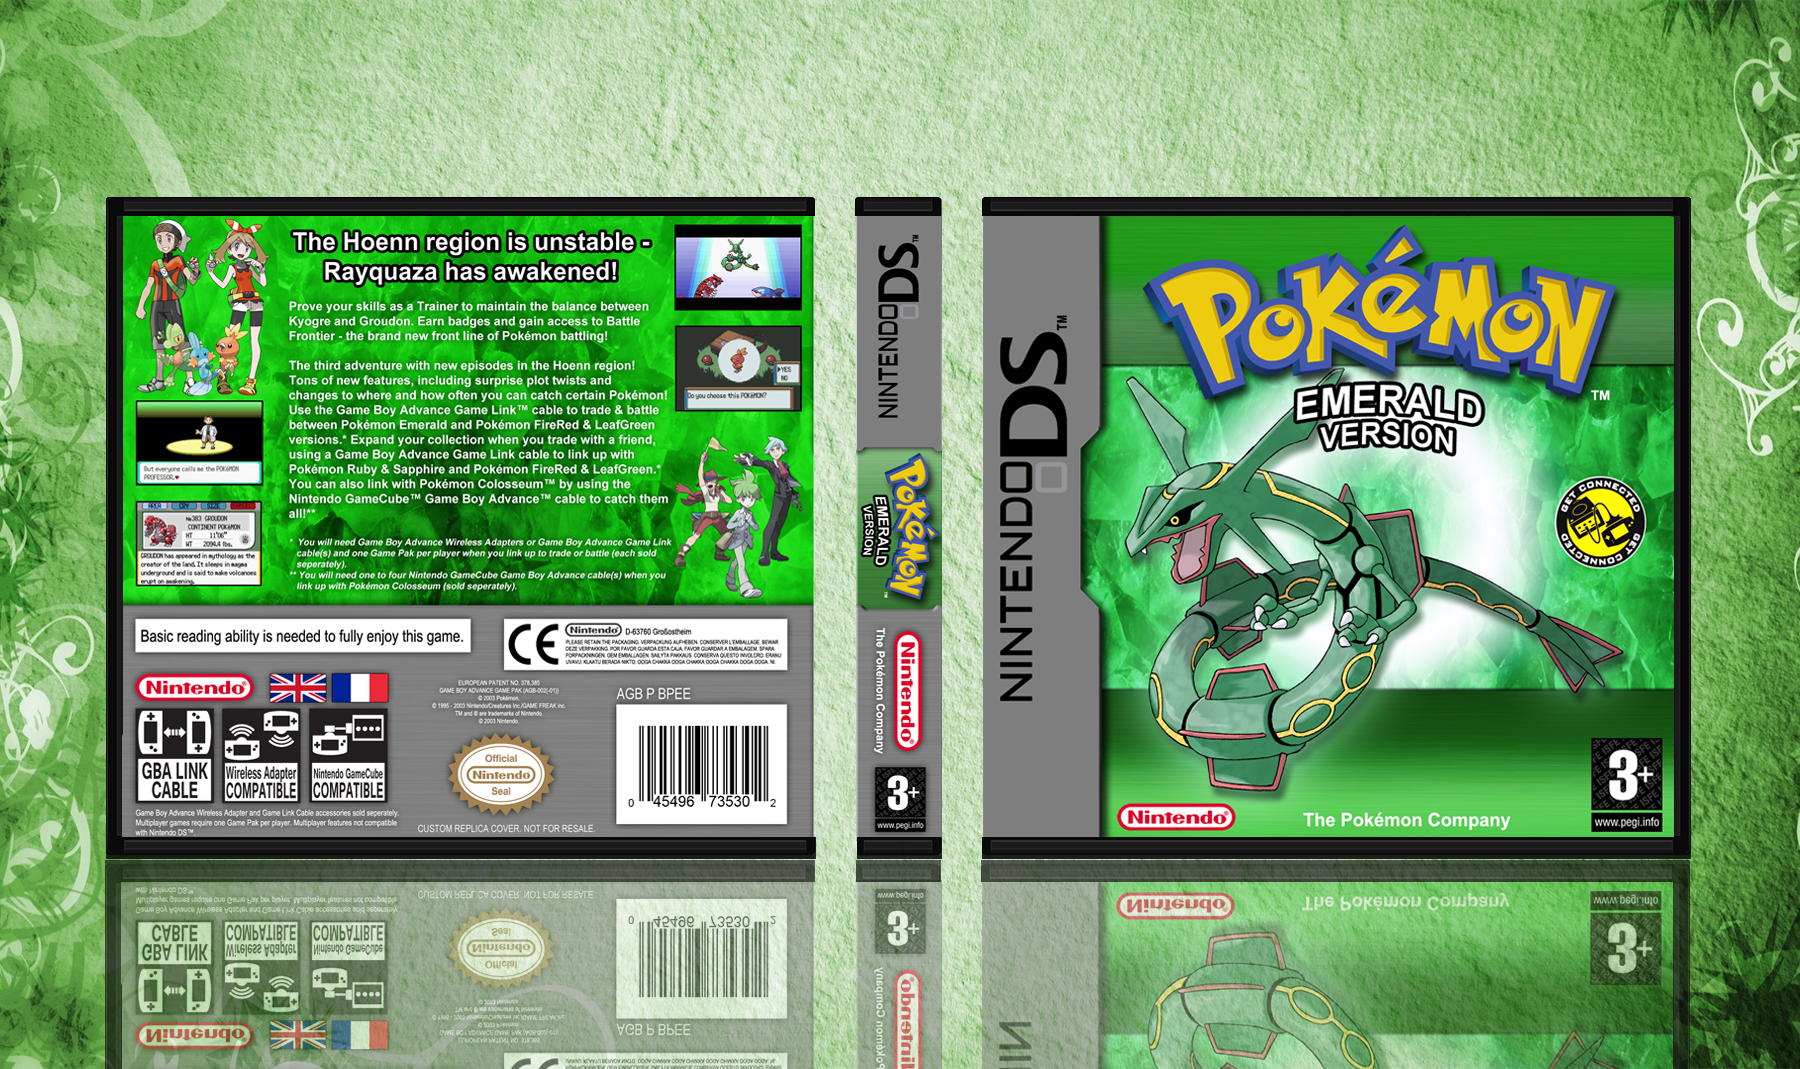 Pokemon Emerald Version box cover